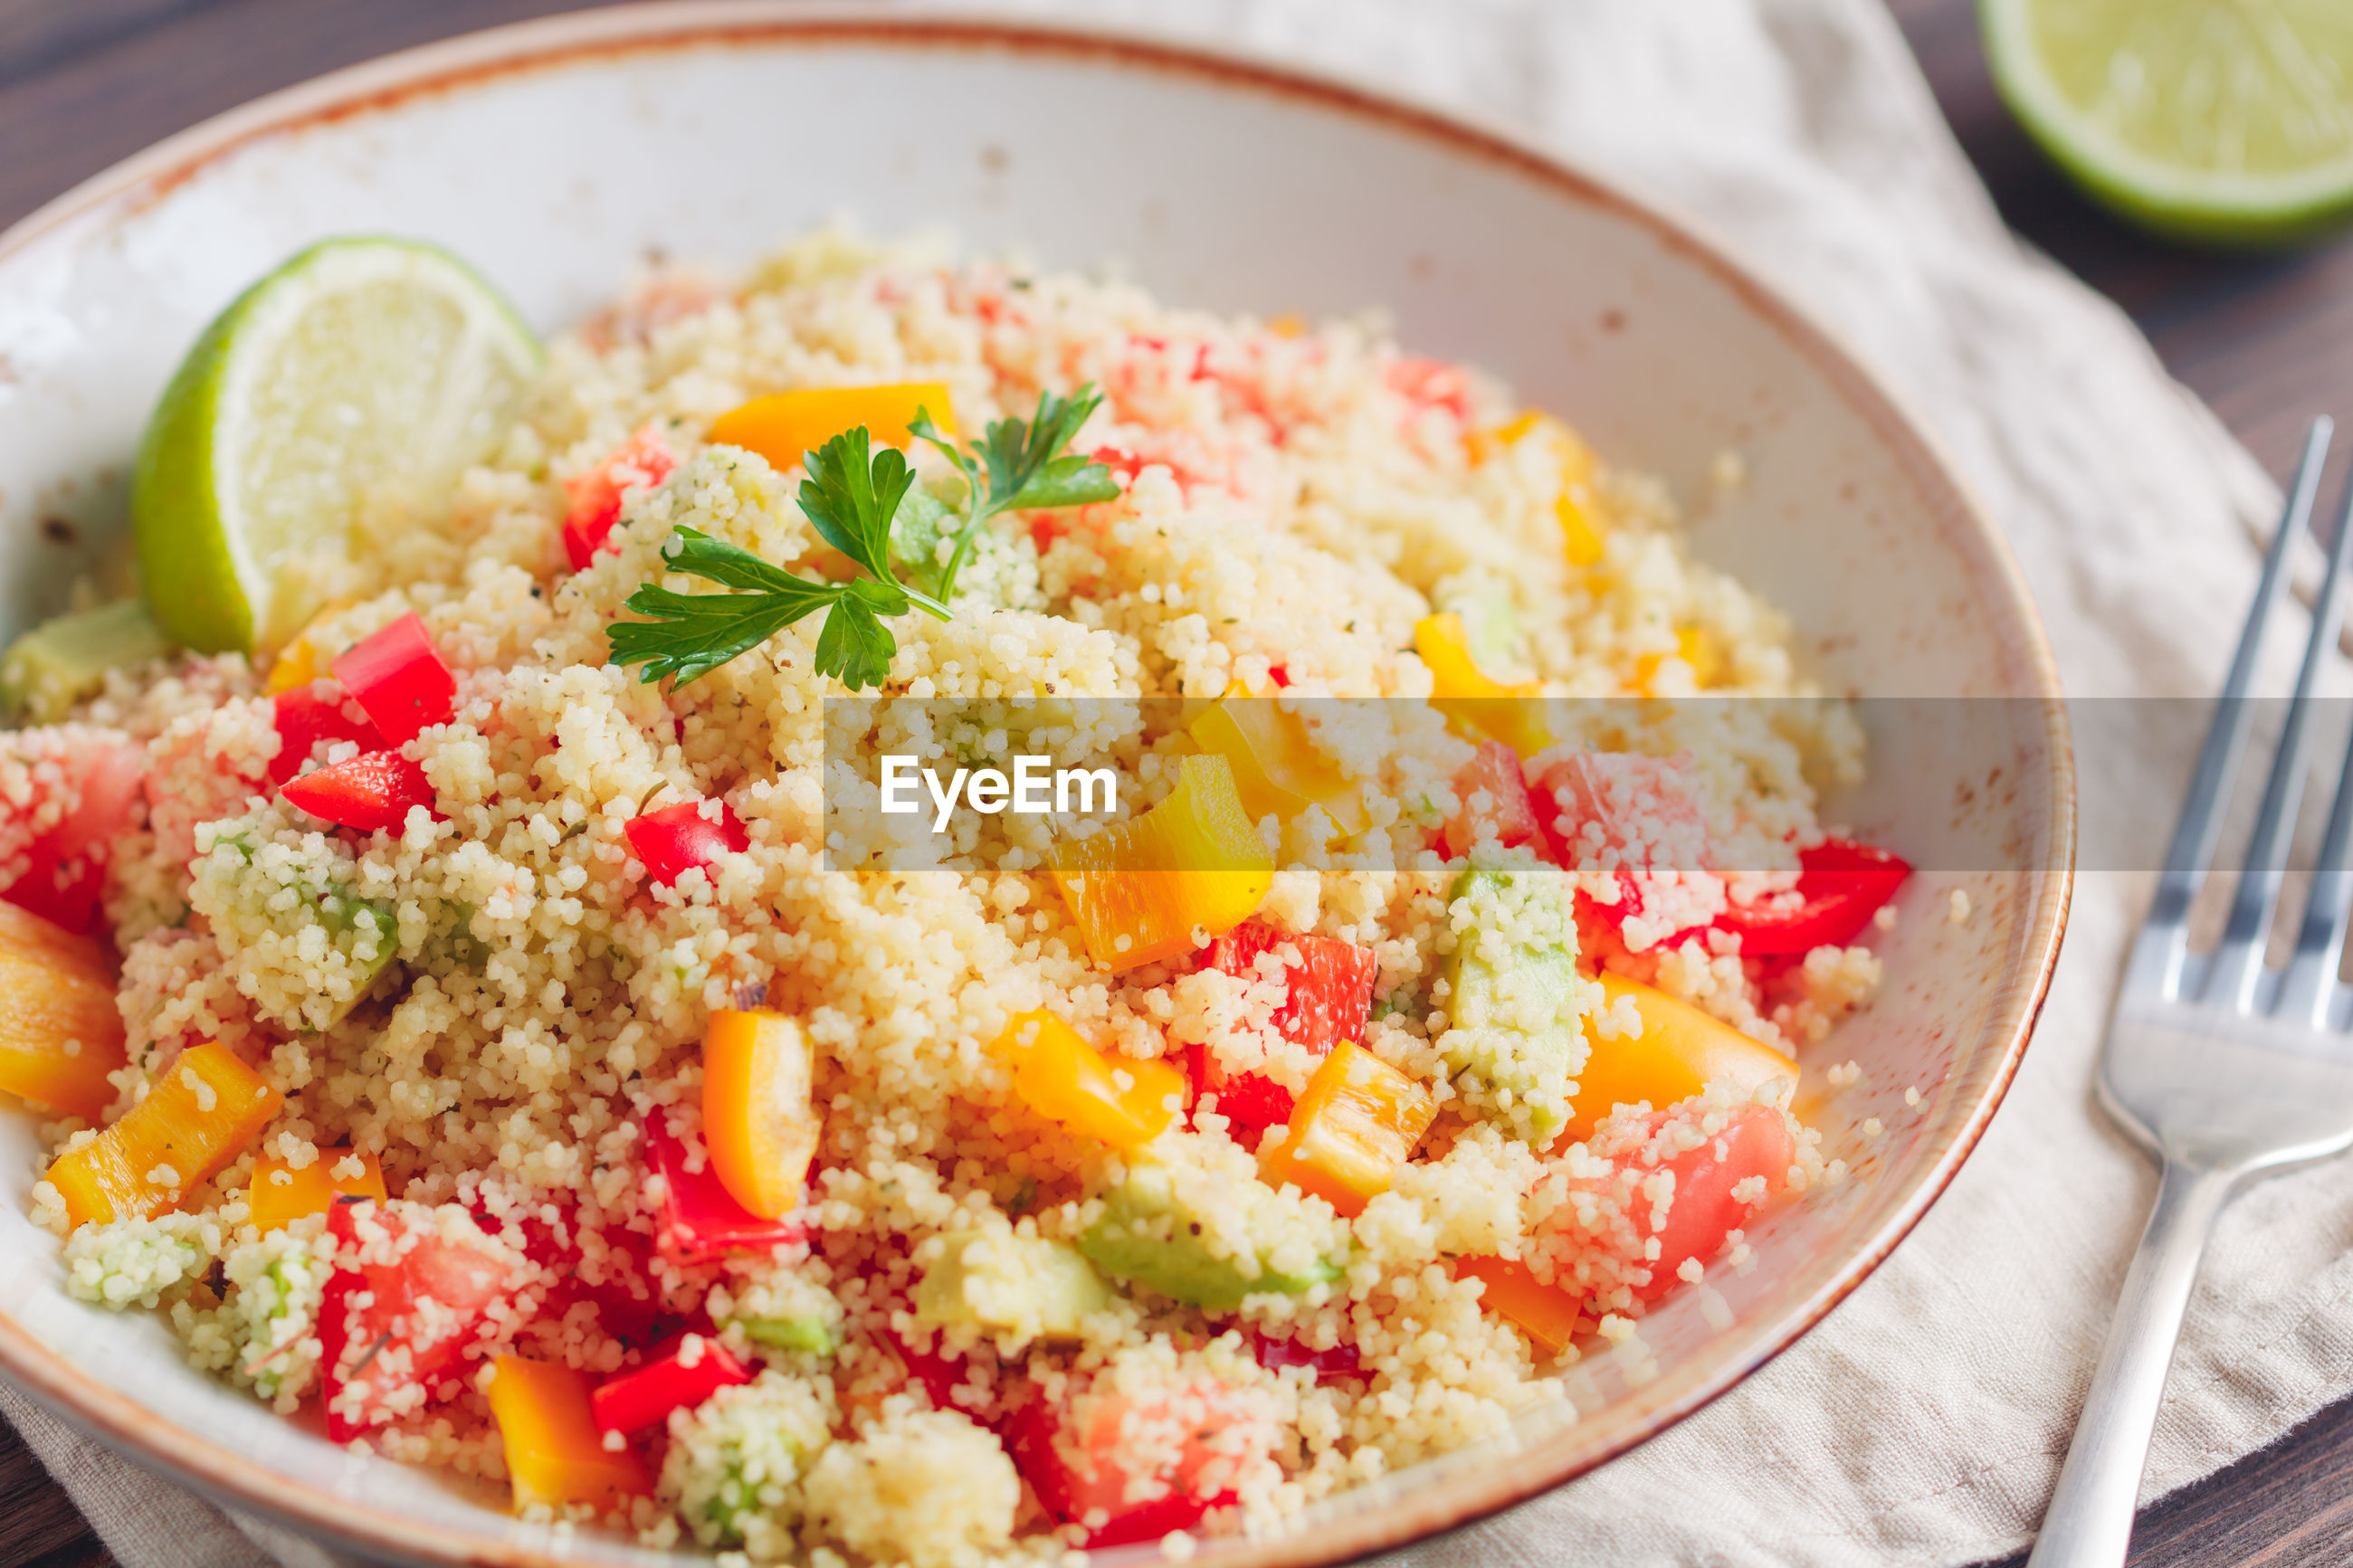 High angle view of couscous served in plate on table